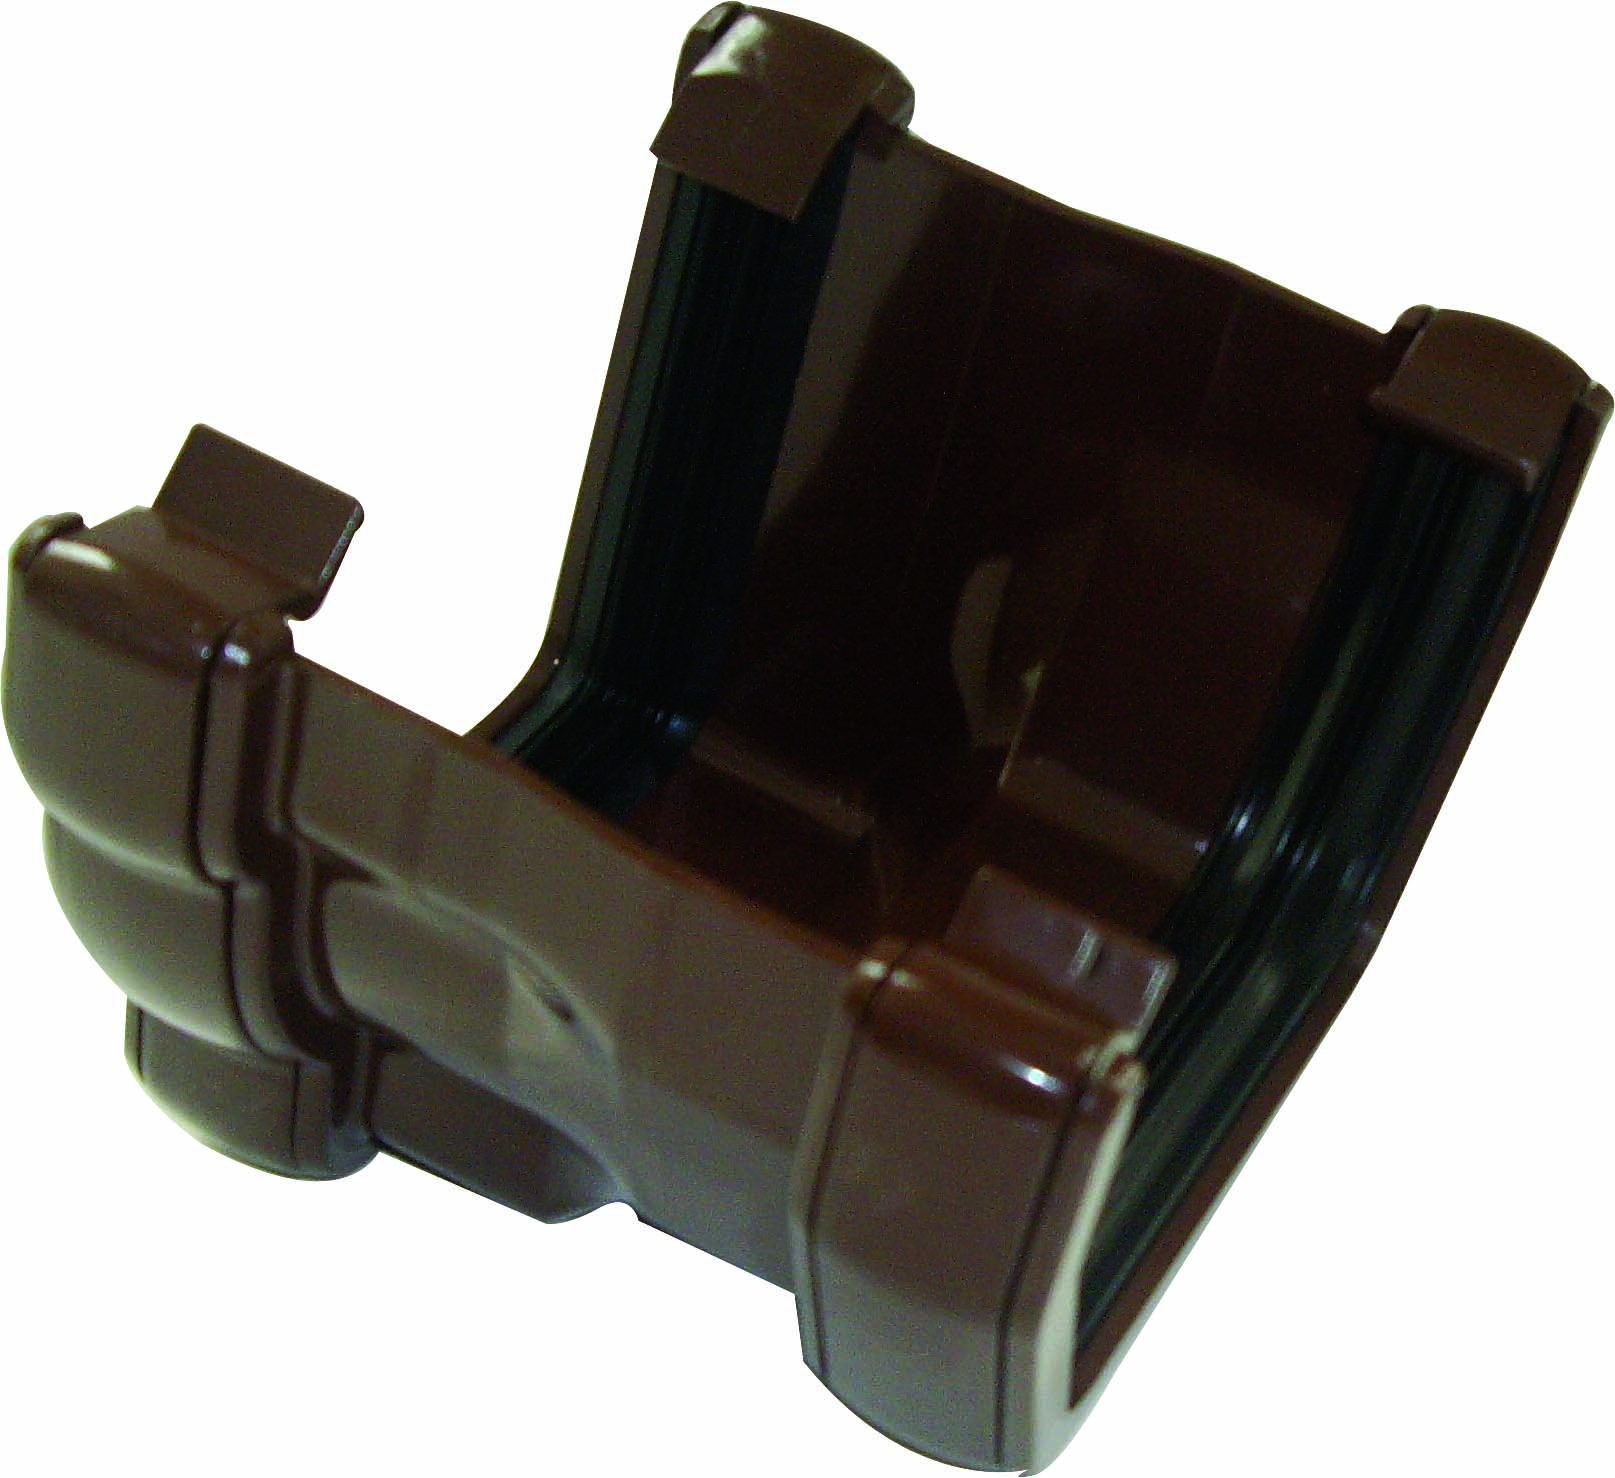 FLOPLAST 112MM NIAGARA TO 112MM HALF ROUND GUTTER ADAPTOR - R/H RNR3 - BROWN